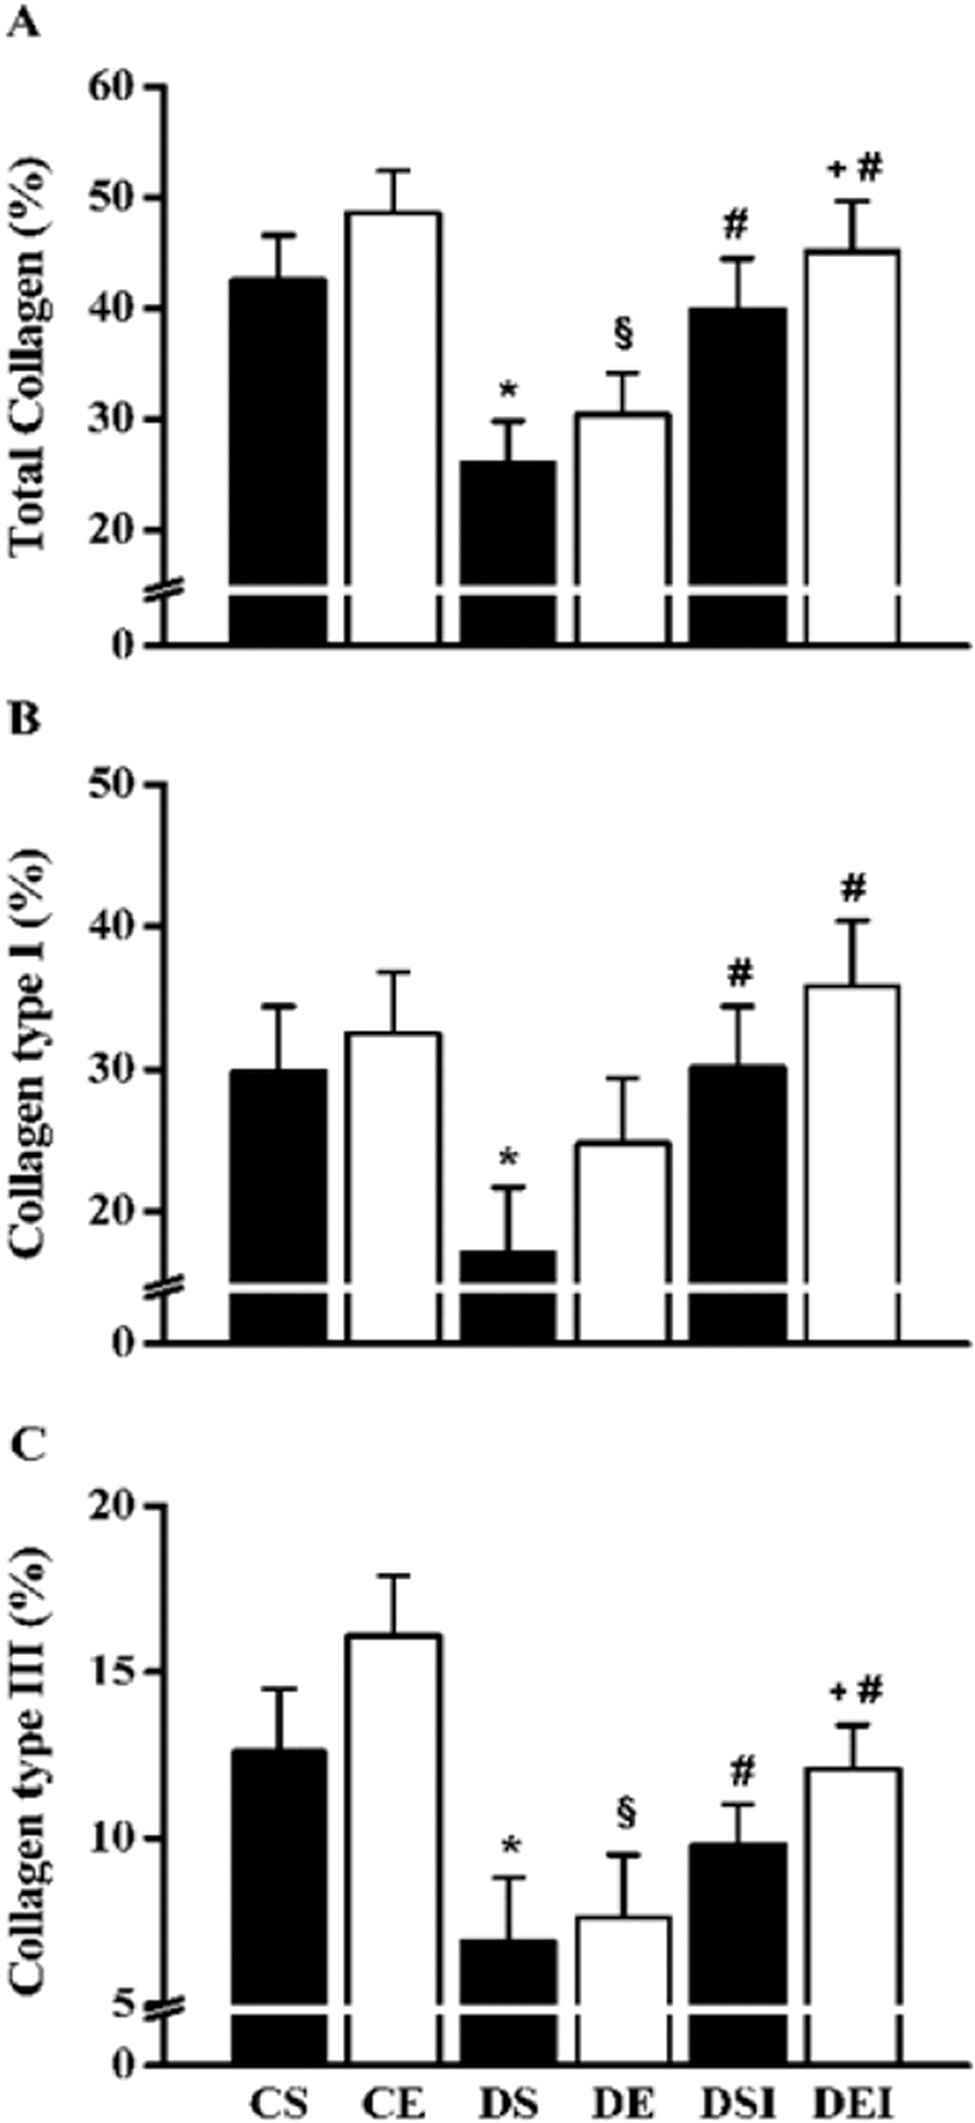 Femoral neck total collagen (A), collagen type I (B) and type III (C) fibers. Data are expressed as the means ± SEMs of 5 images per rat of the 10 rats in each group. CS: control sedentary; CE: control exercise; DS: diabetic sedentary; DE: diabetic exercise; DSI: diabetic sedentary plus insulin; DEI: diabetic exercise plus insulin. *§#+&Significant difference between groups, p<0.05; *vs. CS, §vs. CE, #vs. DS, +vs. DE, &vs. DSI.